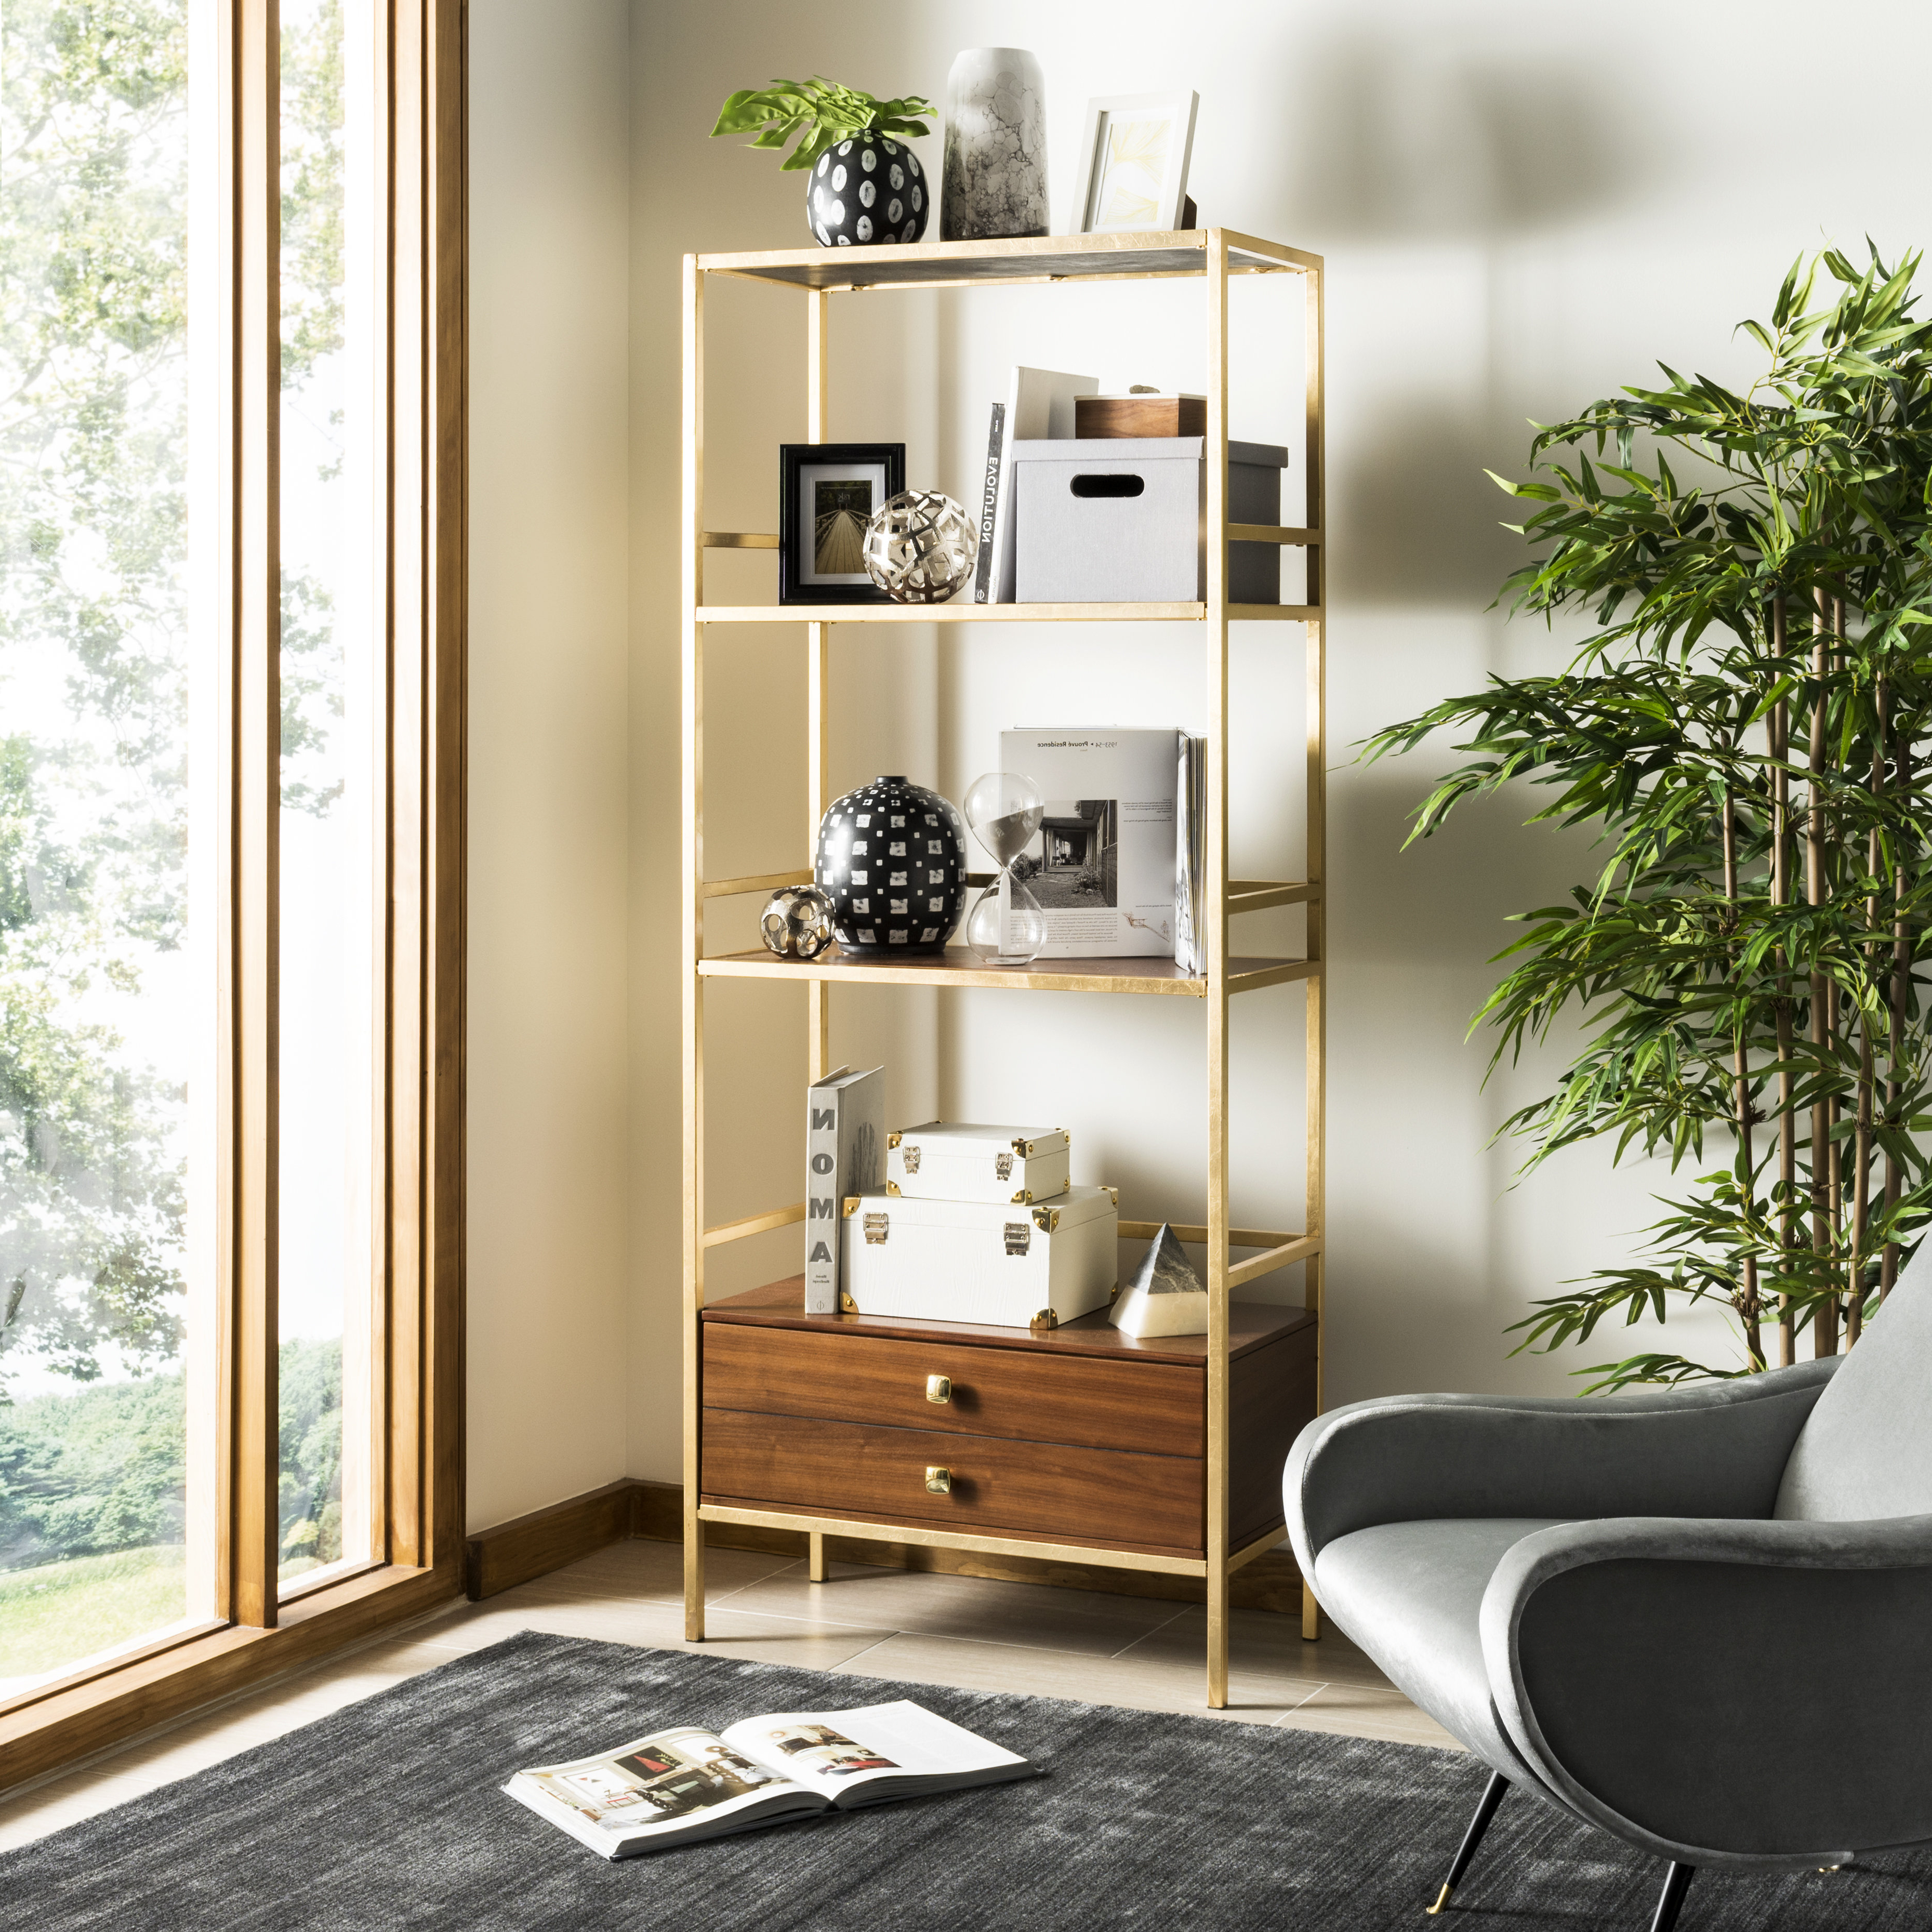 2019 Arrighetto 4 Tier Etagere Bookcase Pertaining To Rech 4 Tier Etagere Bookcases (Gallery 10 of 20)